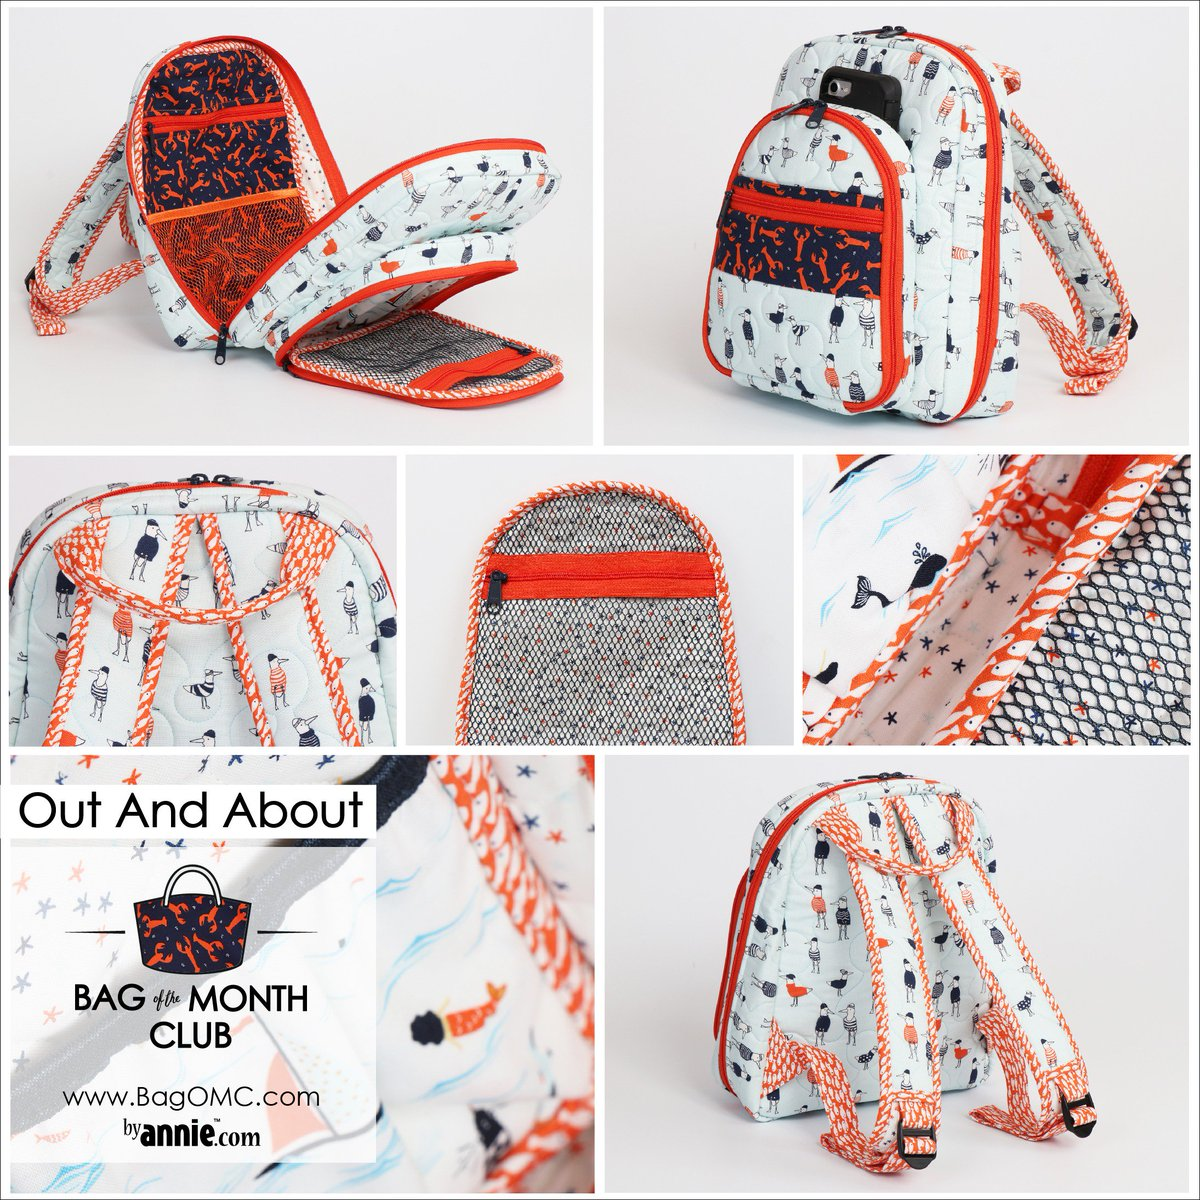 Take a look at our newest bag pattern Out And About, exclusively available to members of the Bag Of The Month Club... sign up today at http://www.bagOMC.com! Fabric by @dearstellafab  #bagomc #bagofthemonthclub #newpattern #patternsbyannie #knapsack #bagmaking